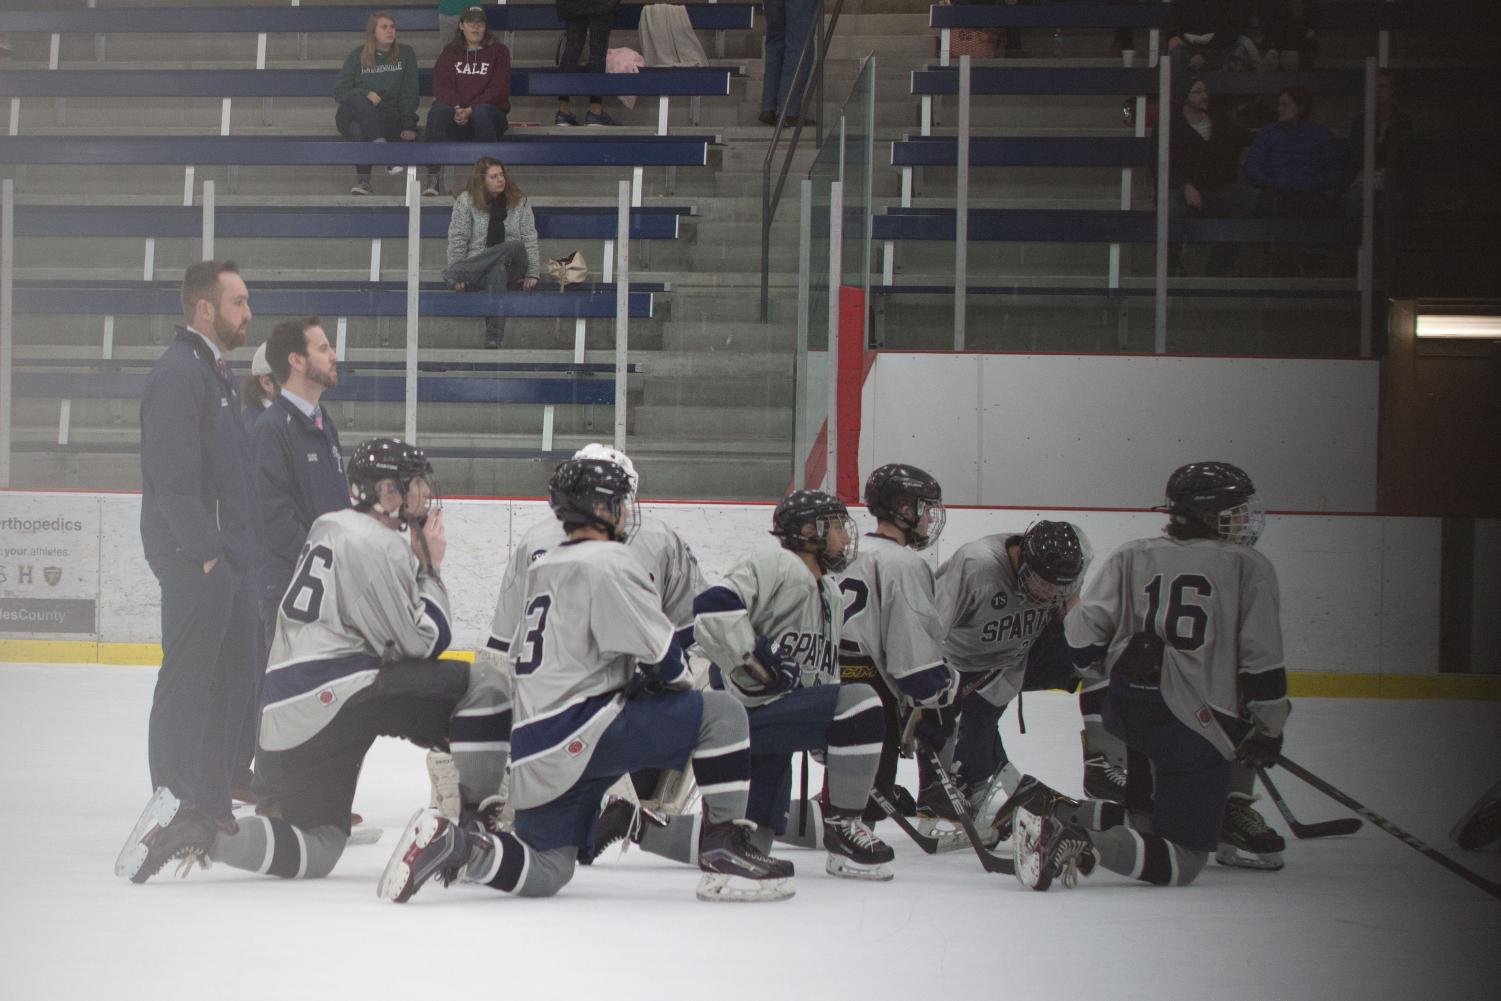 The Spartan ice hockey takes a knee as a huddled mass. The team utilizes this time to discuss the name with one another.